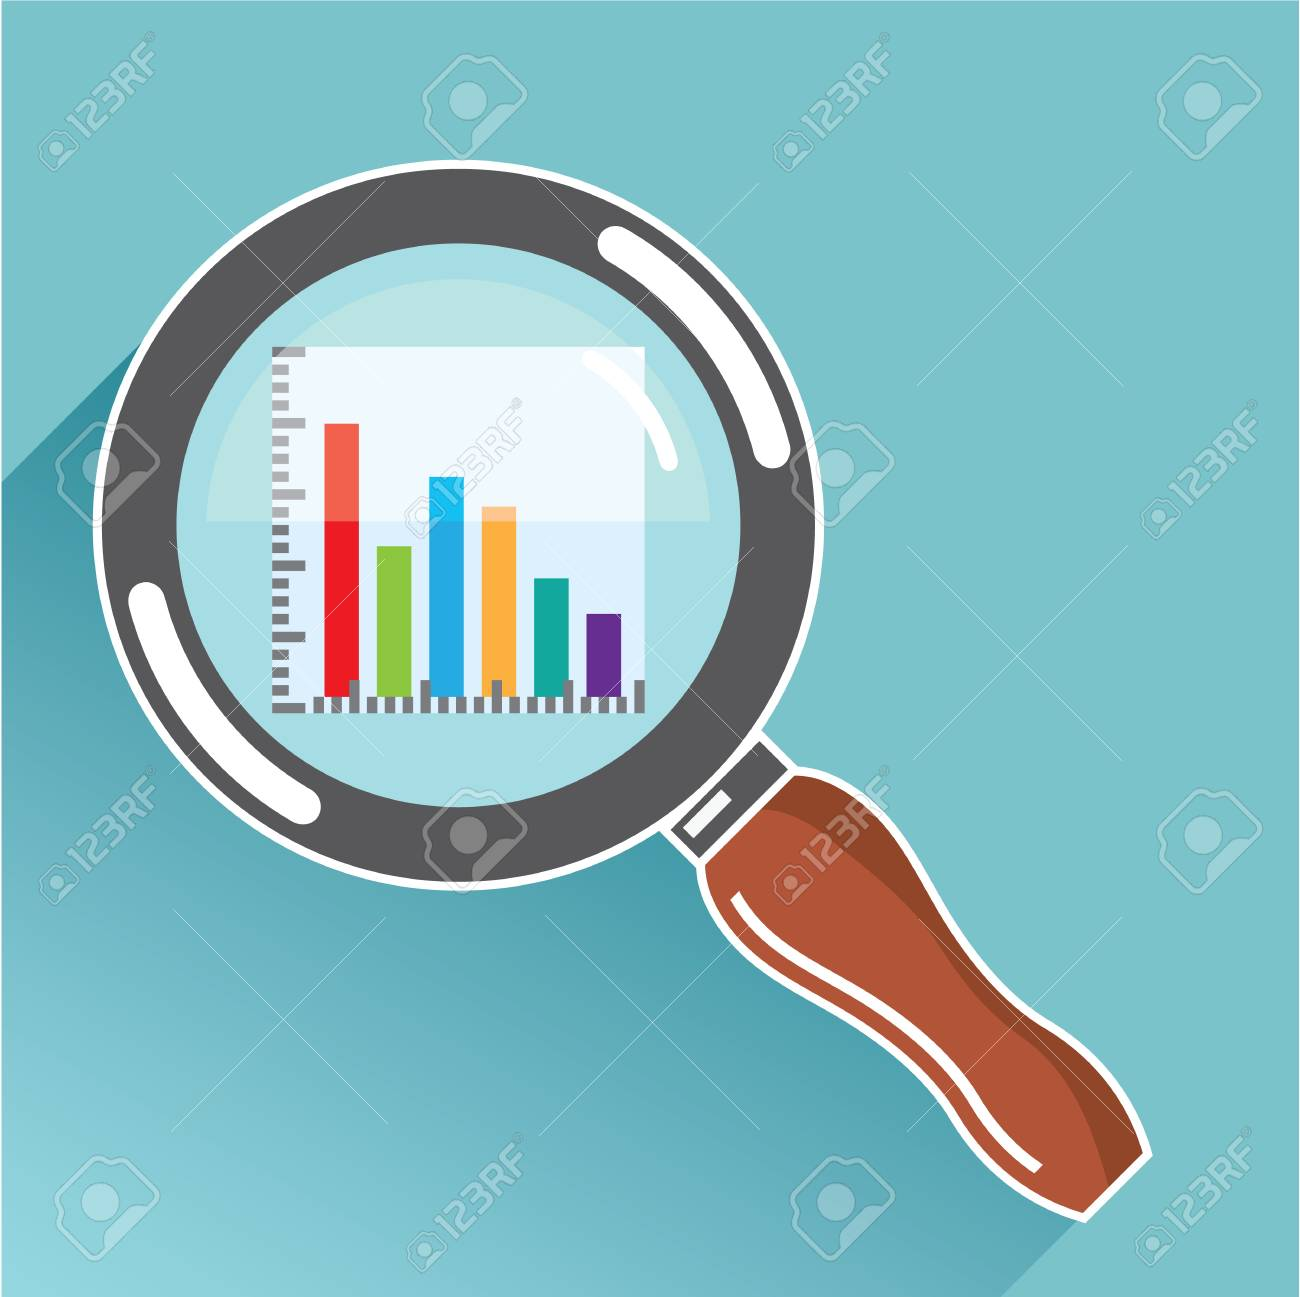 magnifying glass bar graph zoom illustration clip-art image royalty